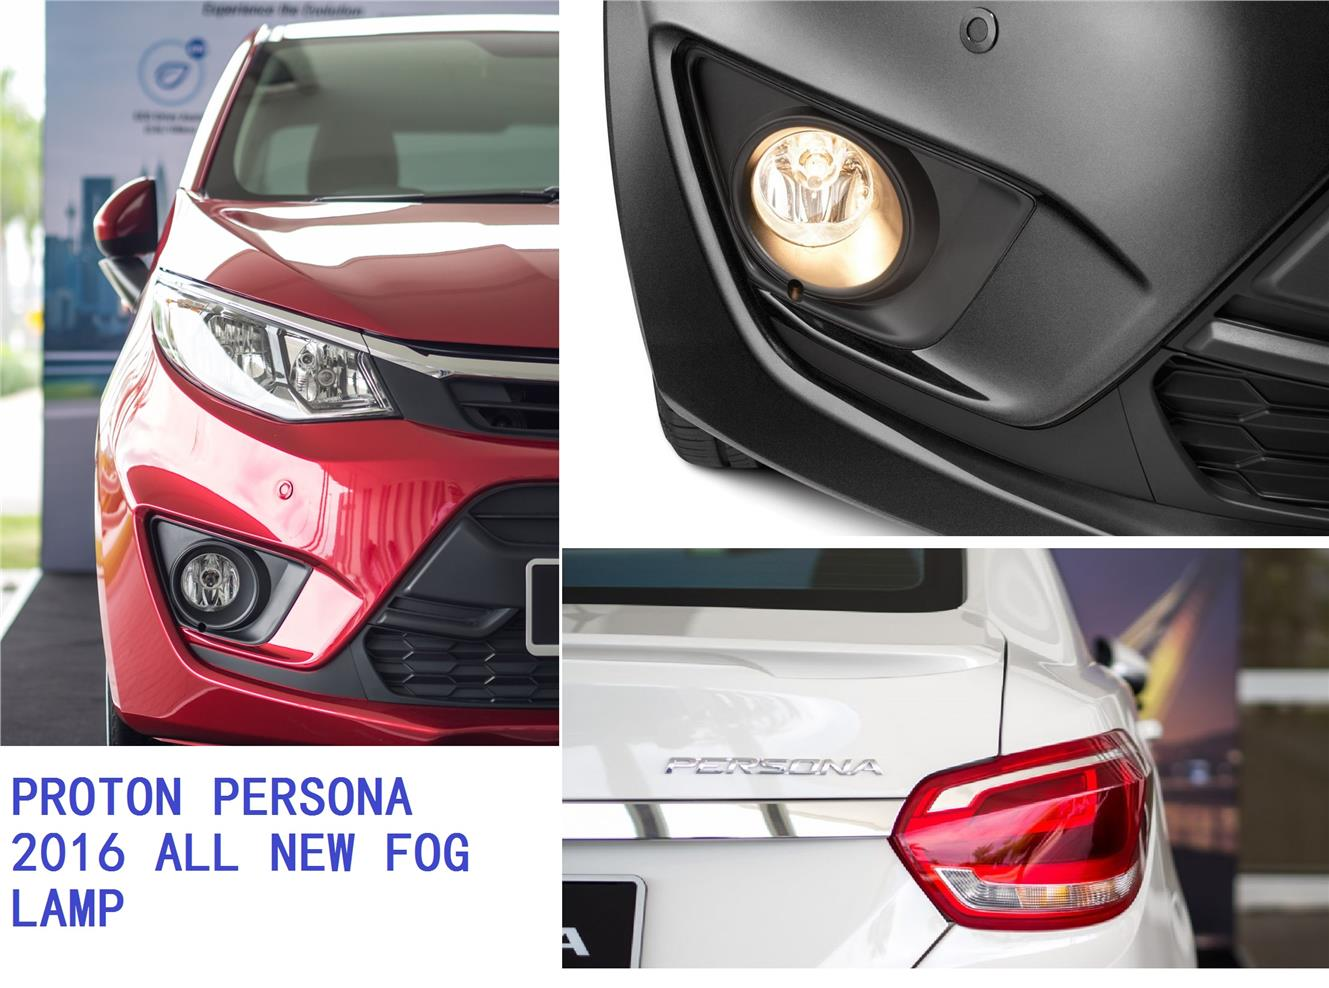 proton persona 2016 all new fog lamp end 3 1 2019 2 36 pm rh lelong com my Fog Lamp Wiring Harness Fog Lamp Relay Wiring